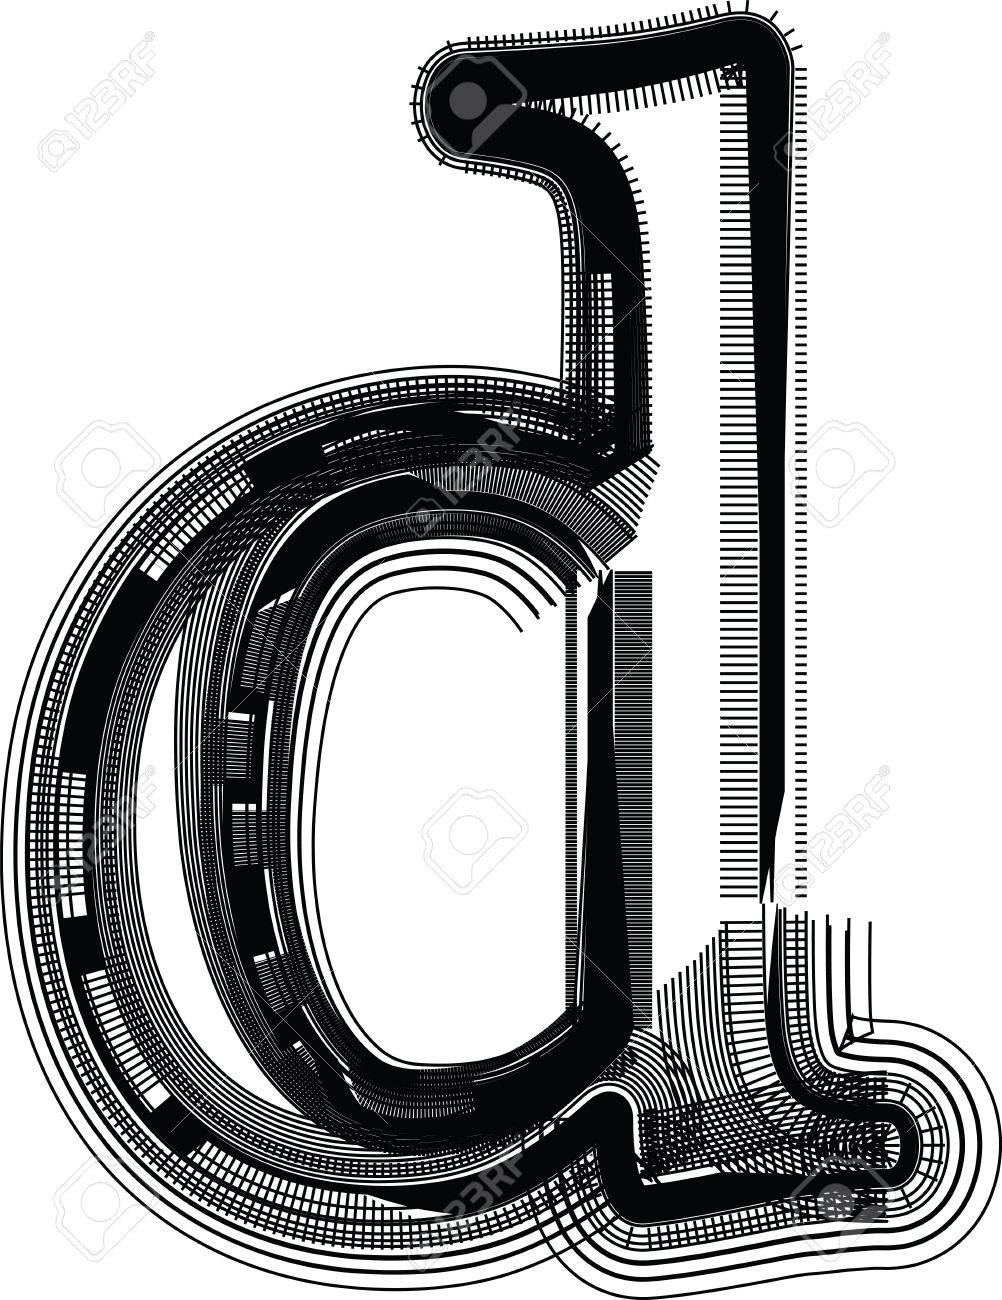 Font Illustration Letter D Royalty Free Cliparts Vectors And Stock